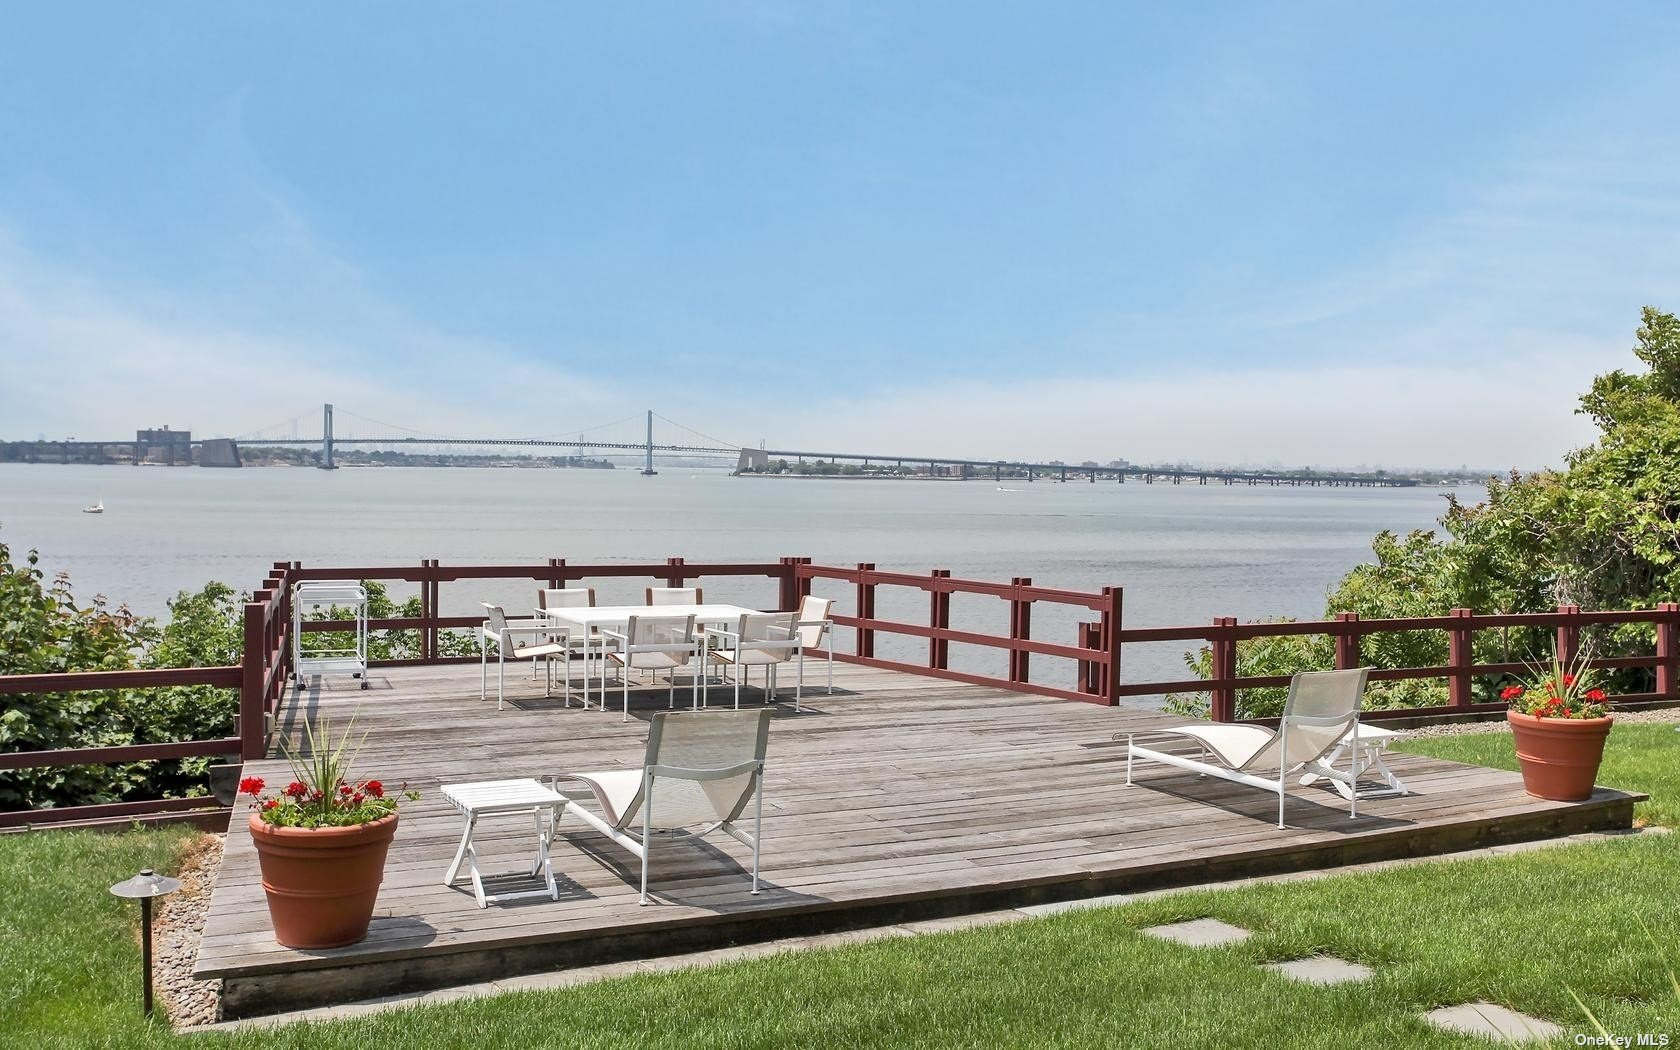 Own Your Own Private Piece Of Waterfront Paradise On The Gold Coast Of Long Island. This Property Features Unobstructed Waterfront Views Overlooking Manhattan And The Bridges. This 6 Br 5.5 Ba Contemporary Home, on 1.23 Acres,  Features An Open Floor Plan & Impeccably Designed Living Space. Private Blue-Stone Pool, Terraces, And Spectacular Sunsets Year Round Makes It Perfect For Entertaining.